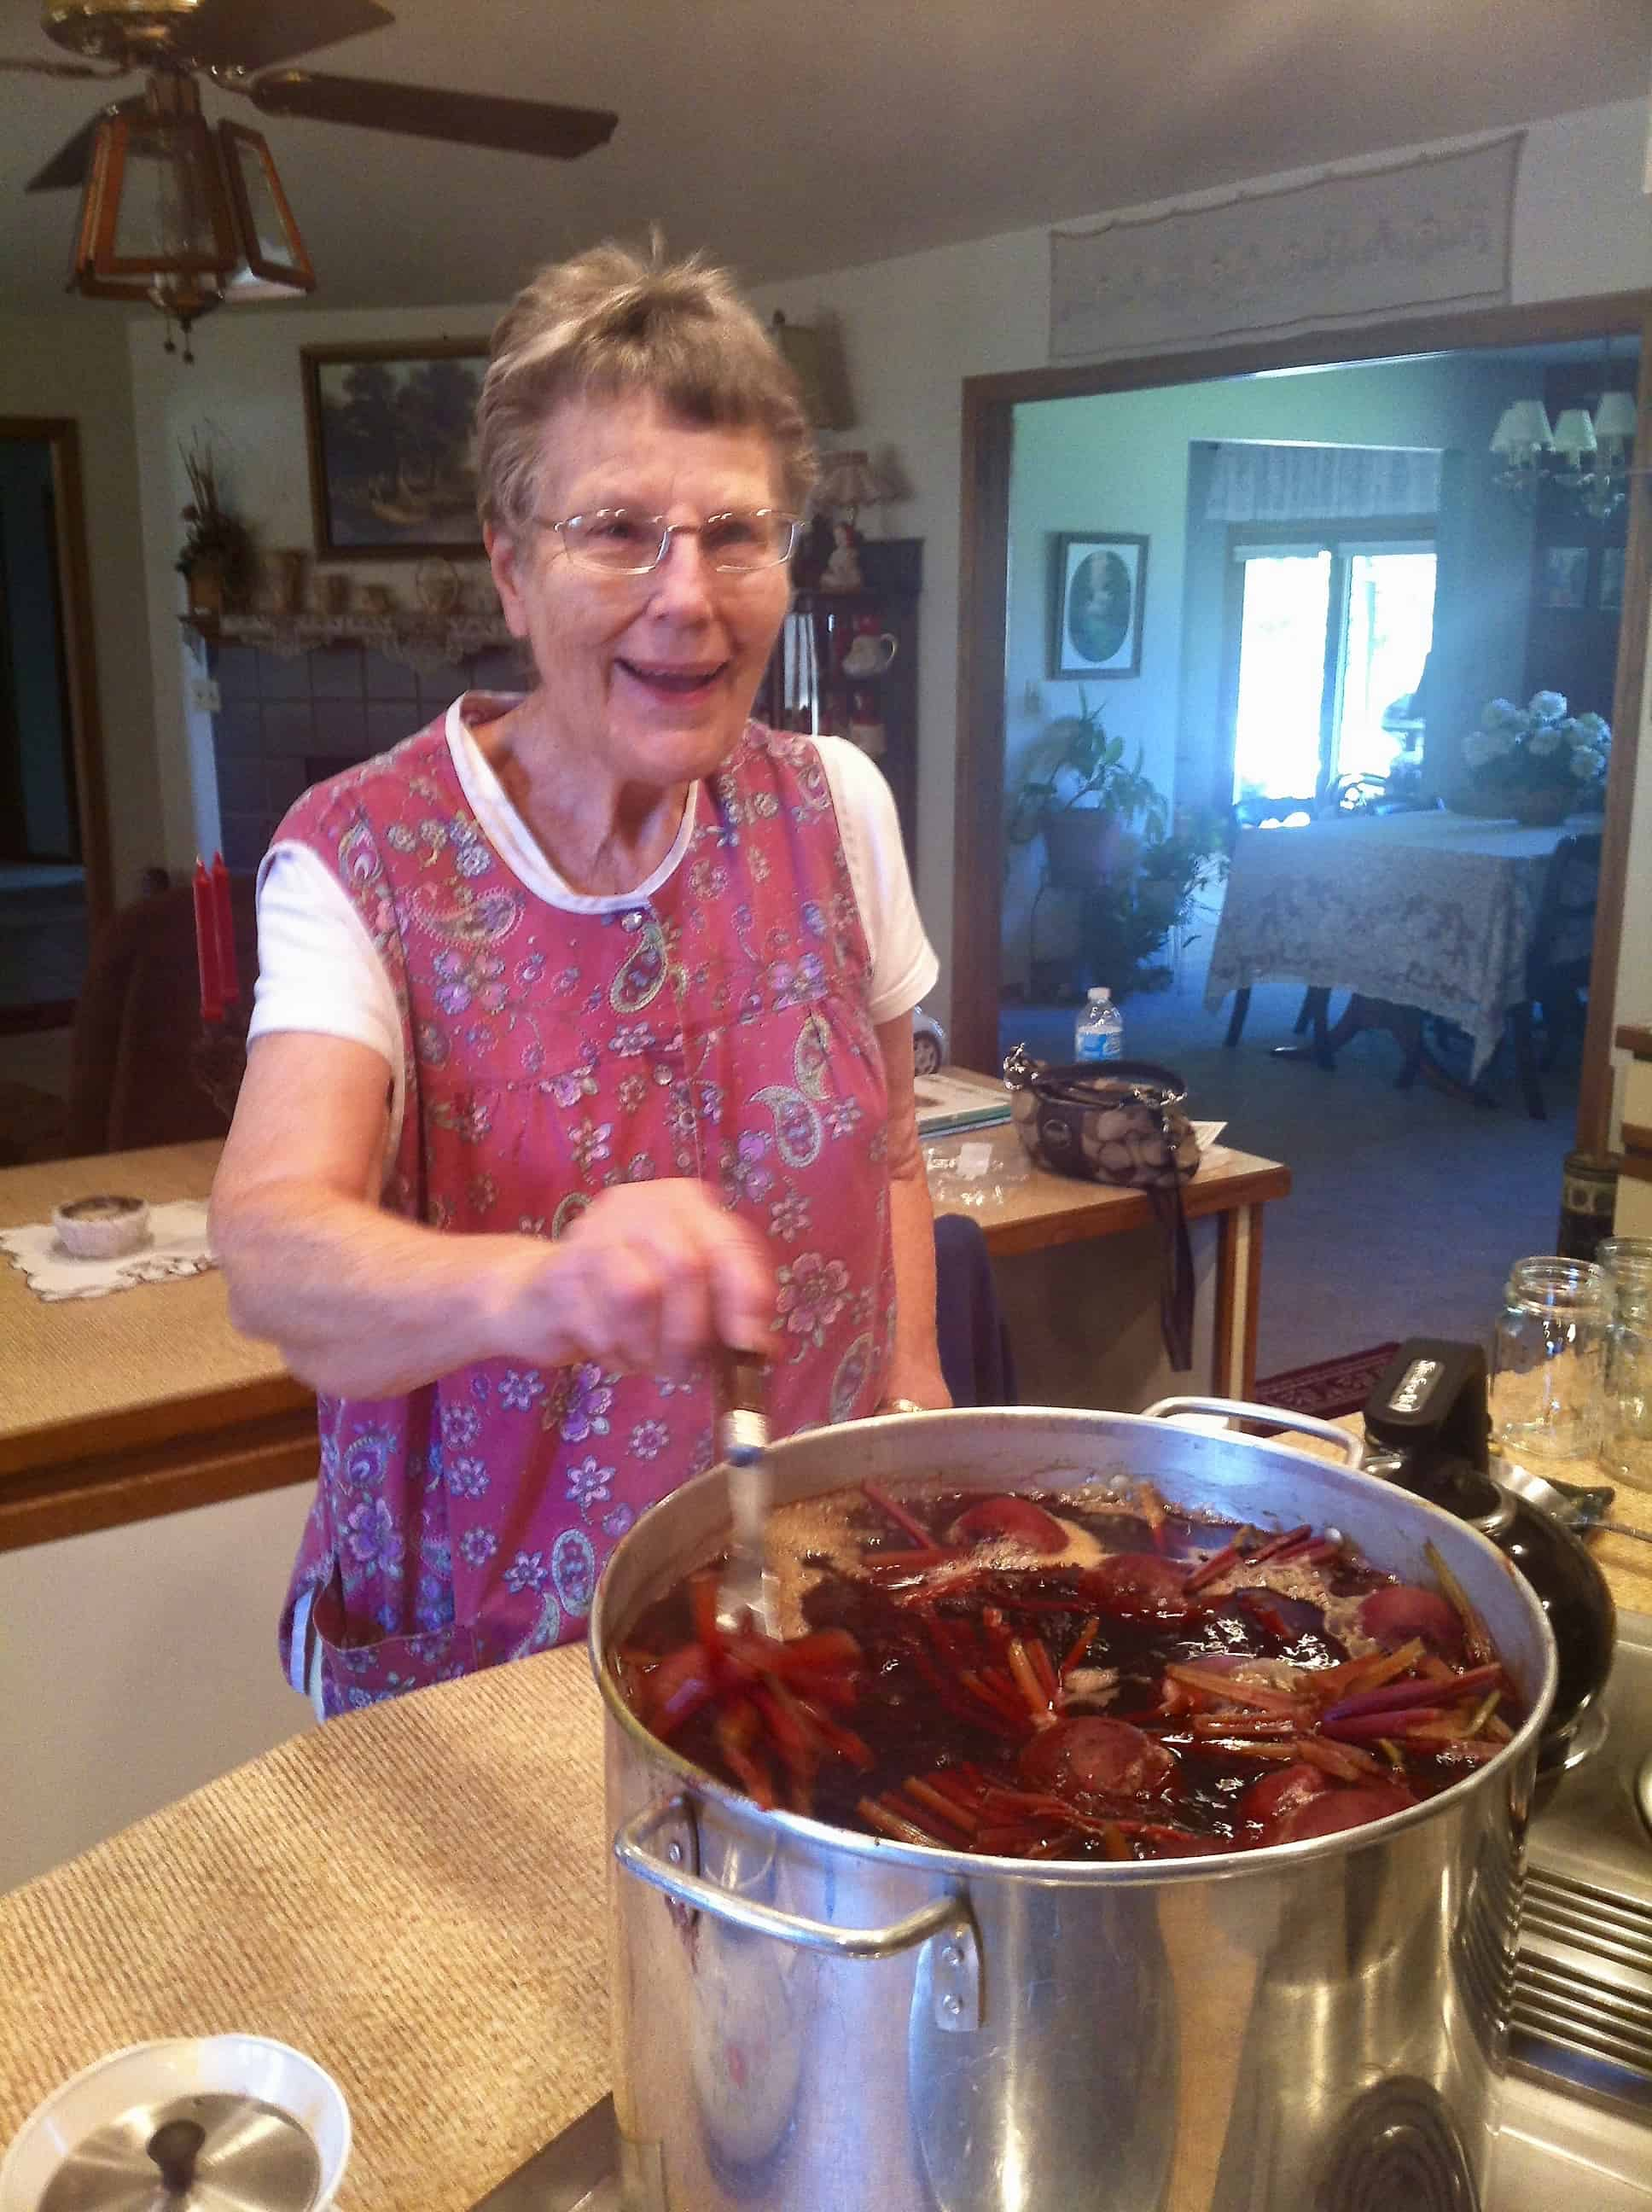 Mom stirring beets for canning